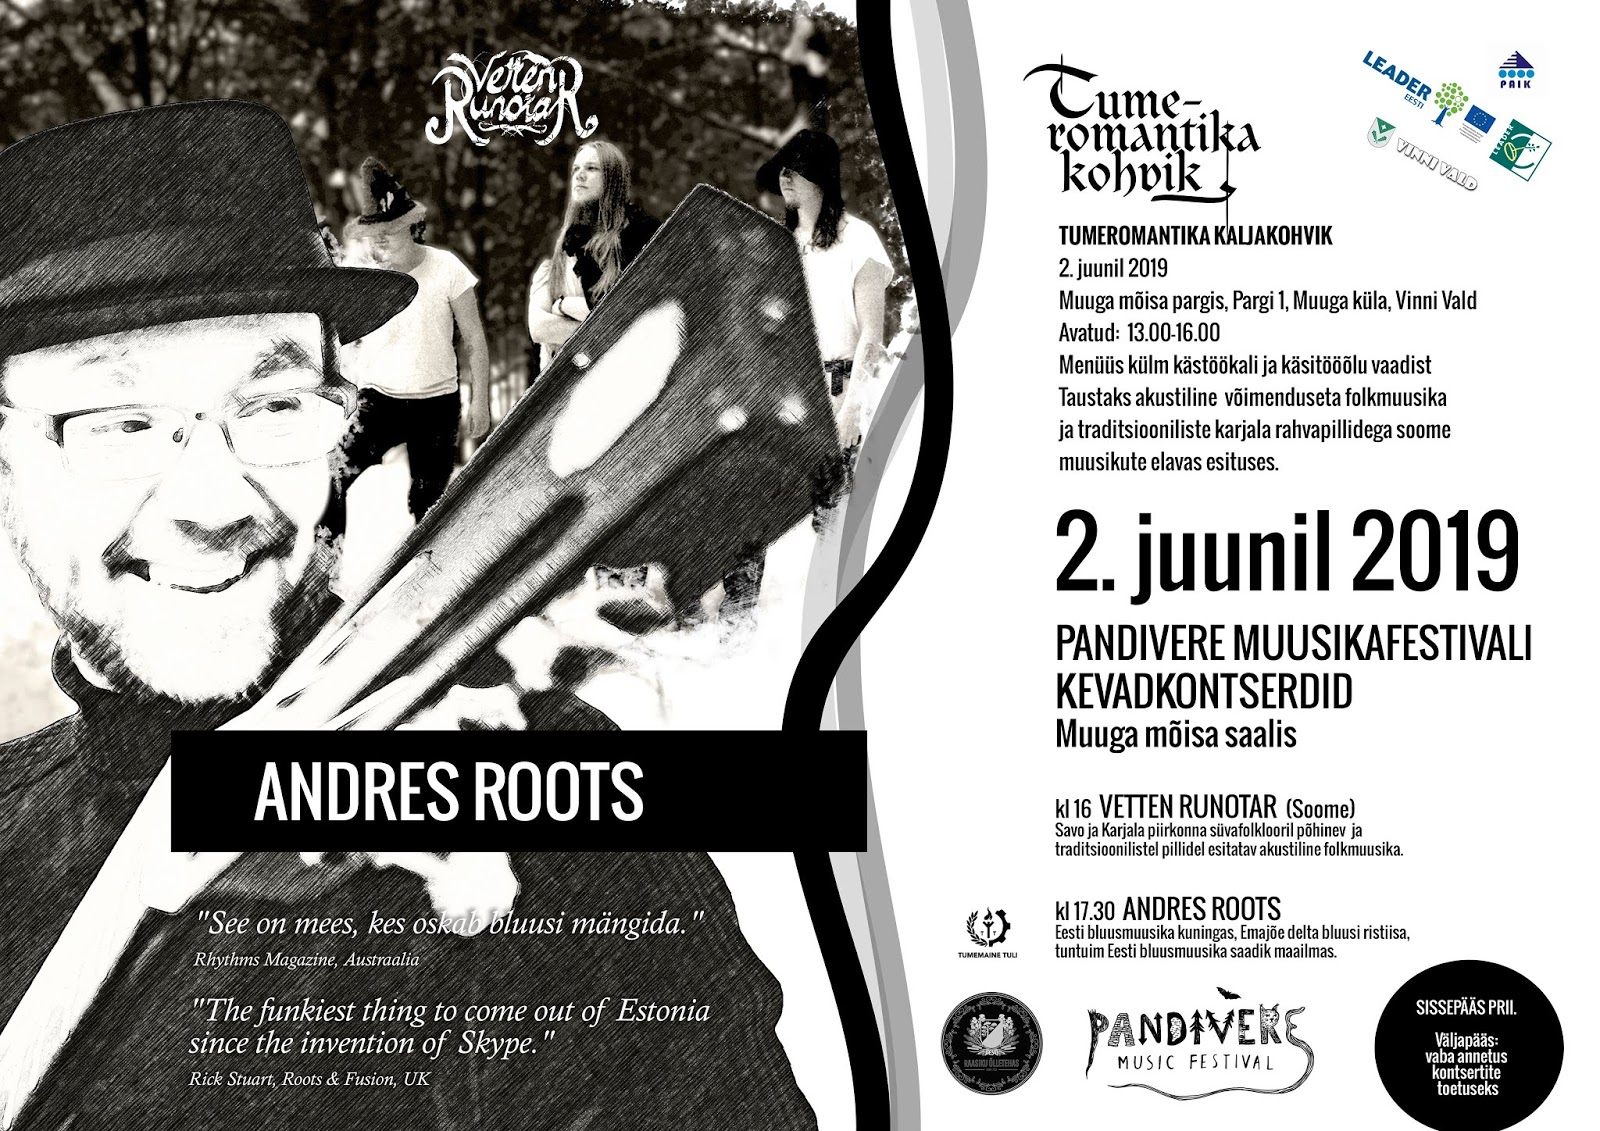 Andres Roots Roundabout: